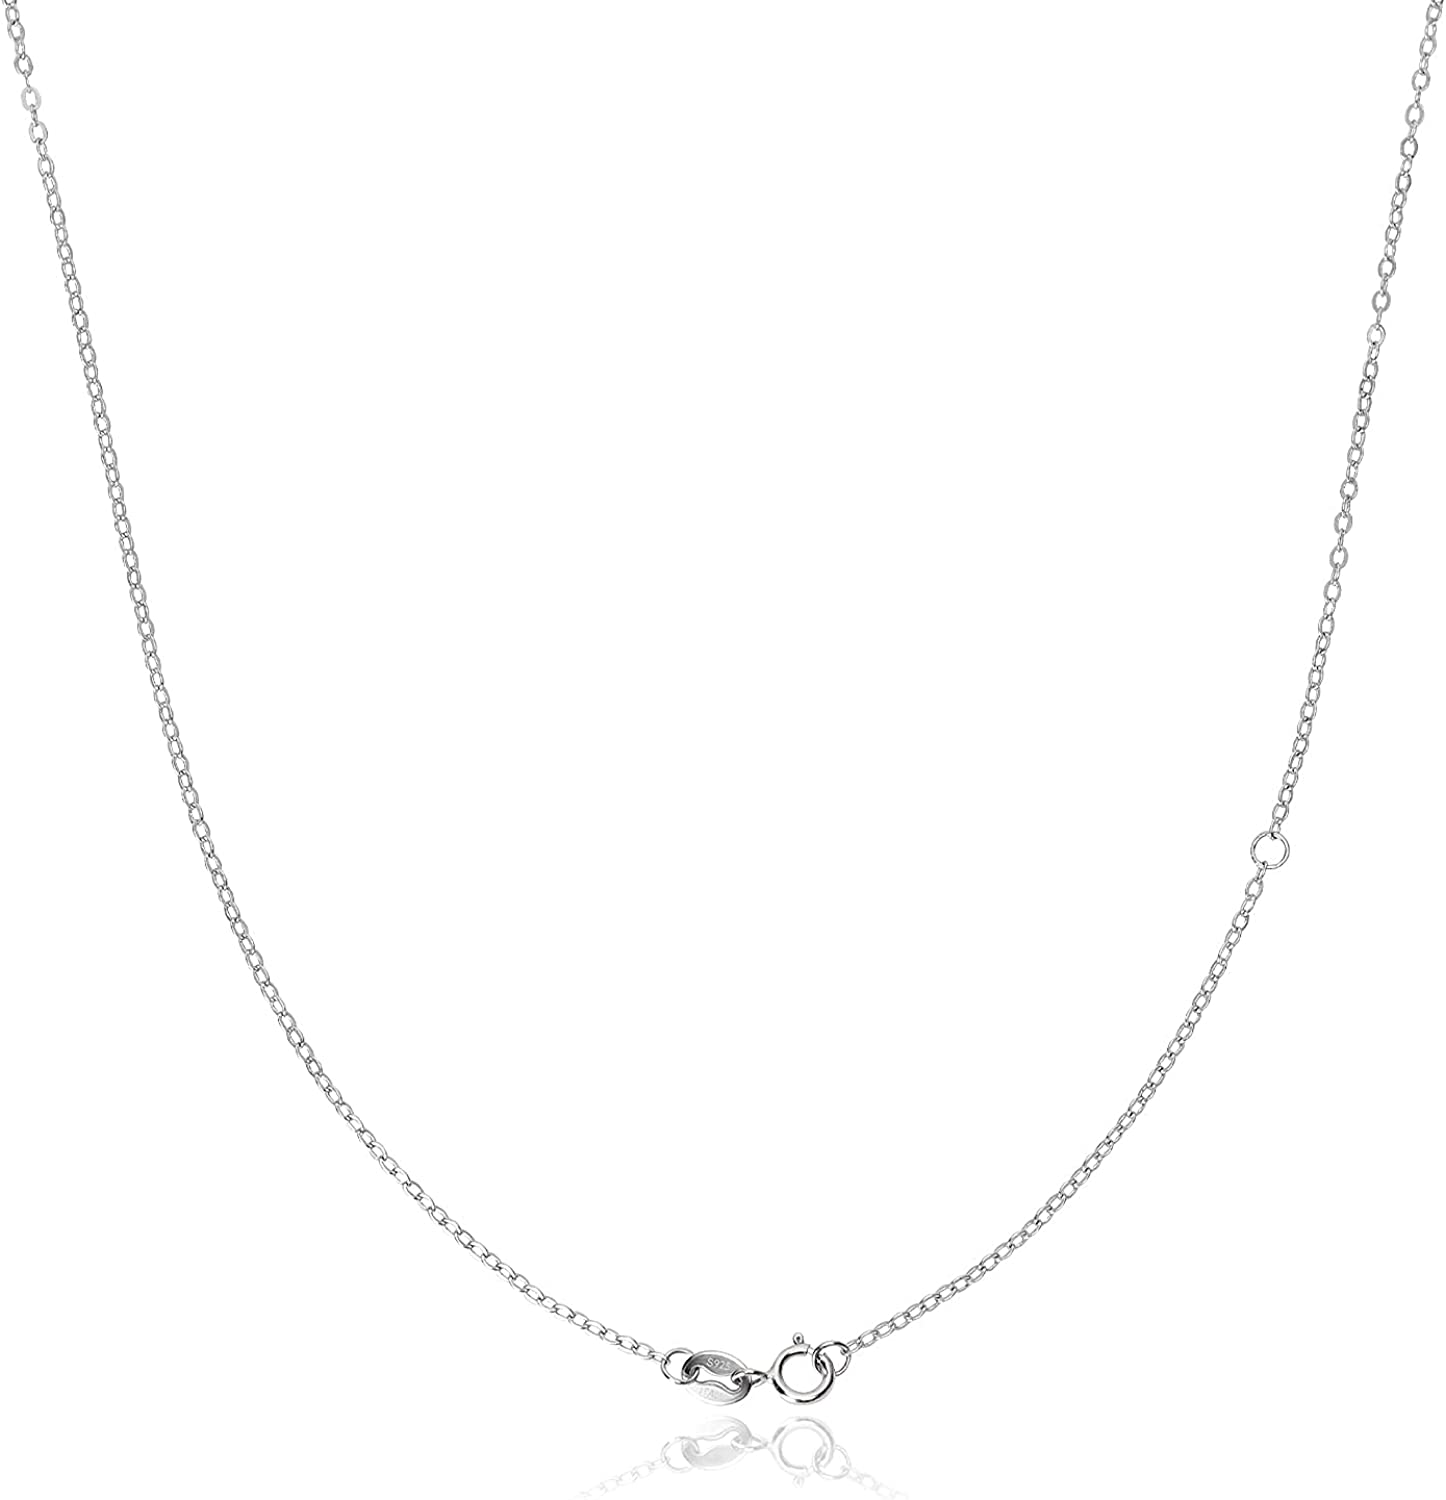 925 Sterling Silver Necklace for Neckla OFFicial Sales of SALE items from new works mail order Chain Women Replacement